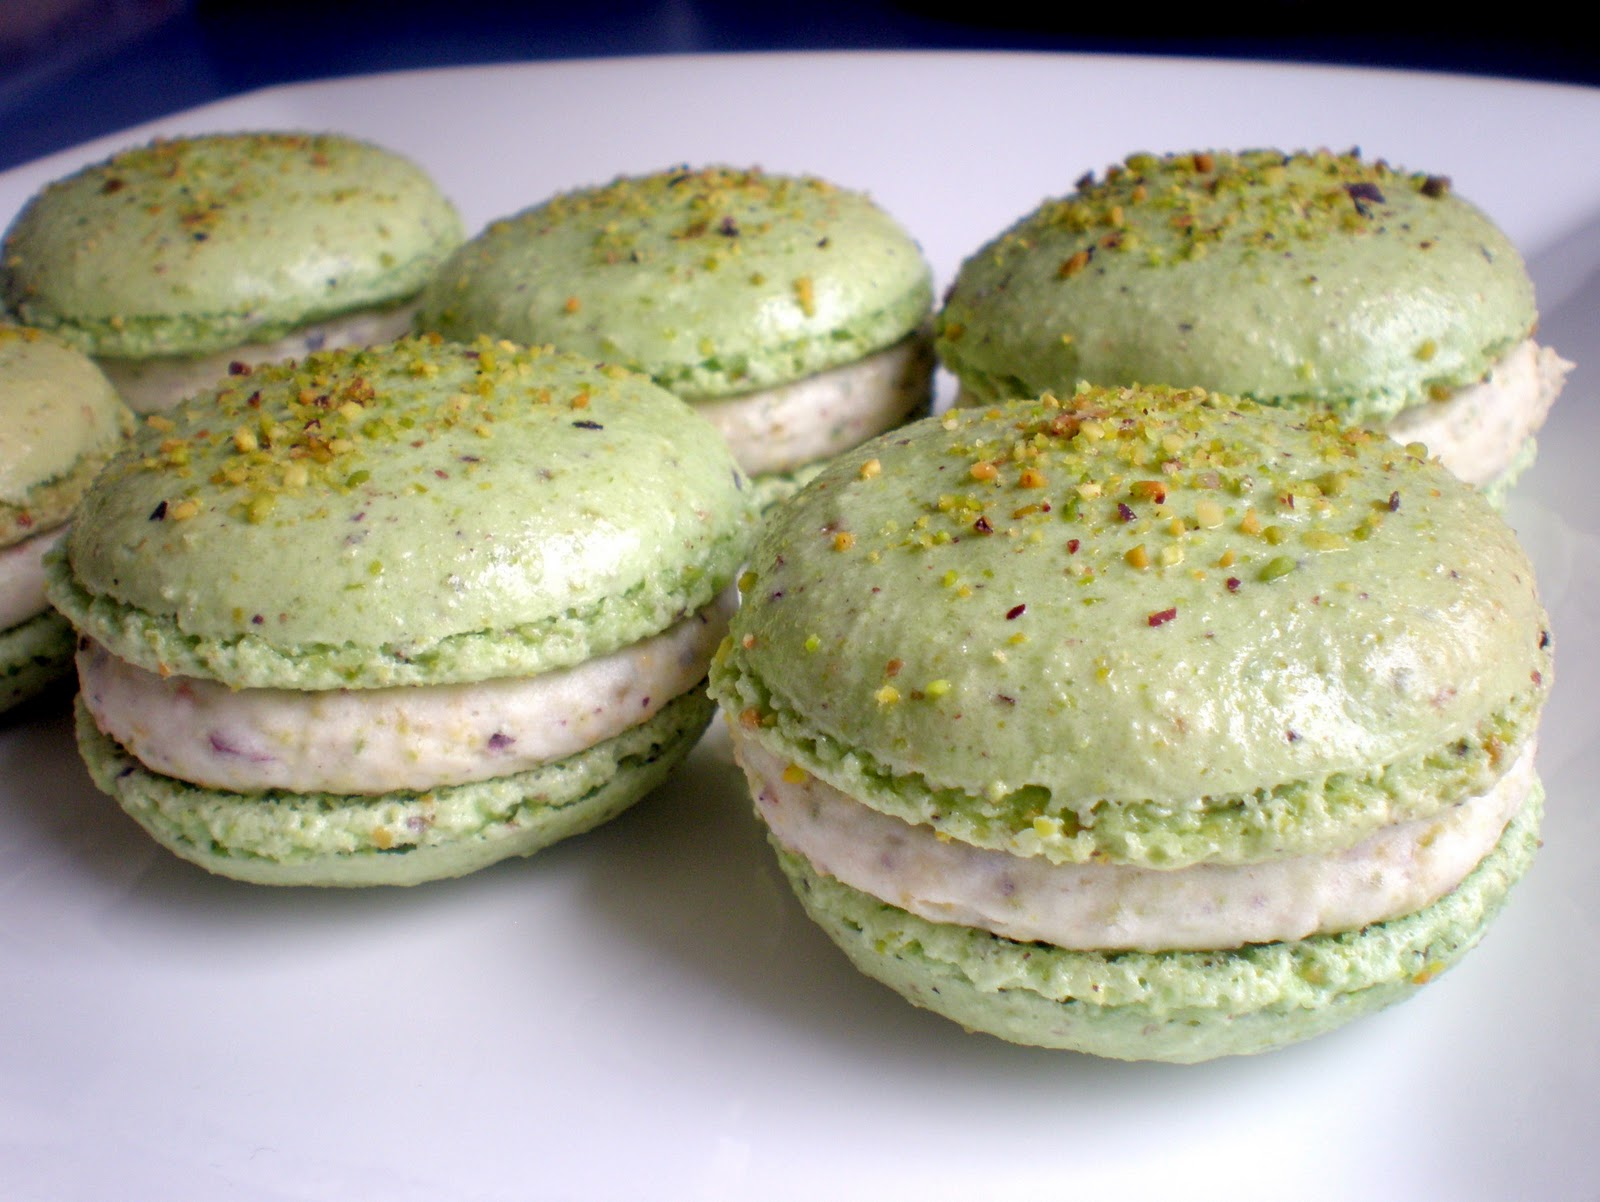 Pistachio macarons with white chocolate & pistachio buttercream.